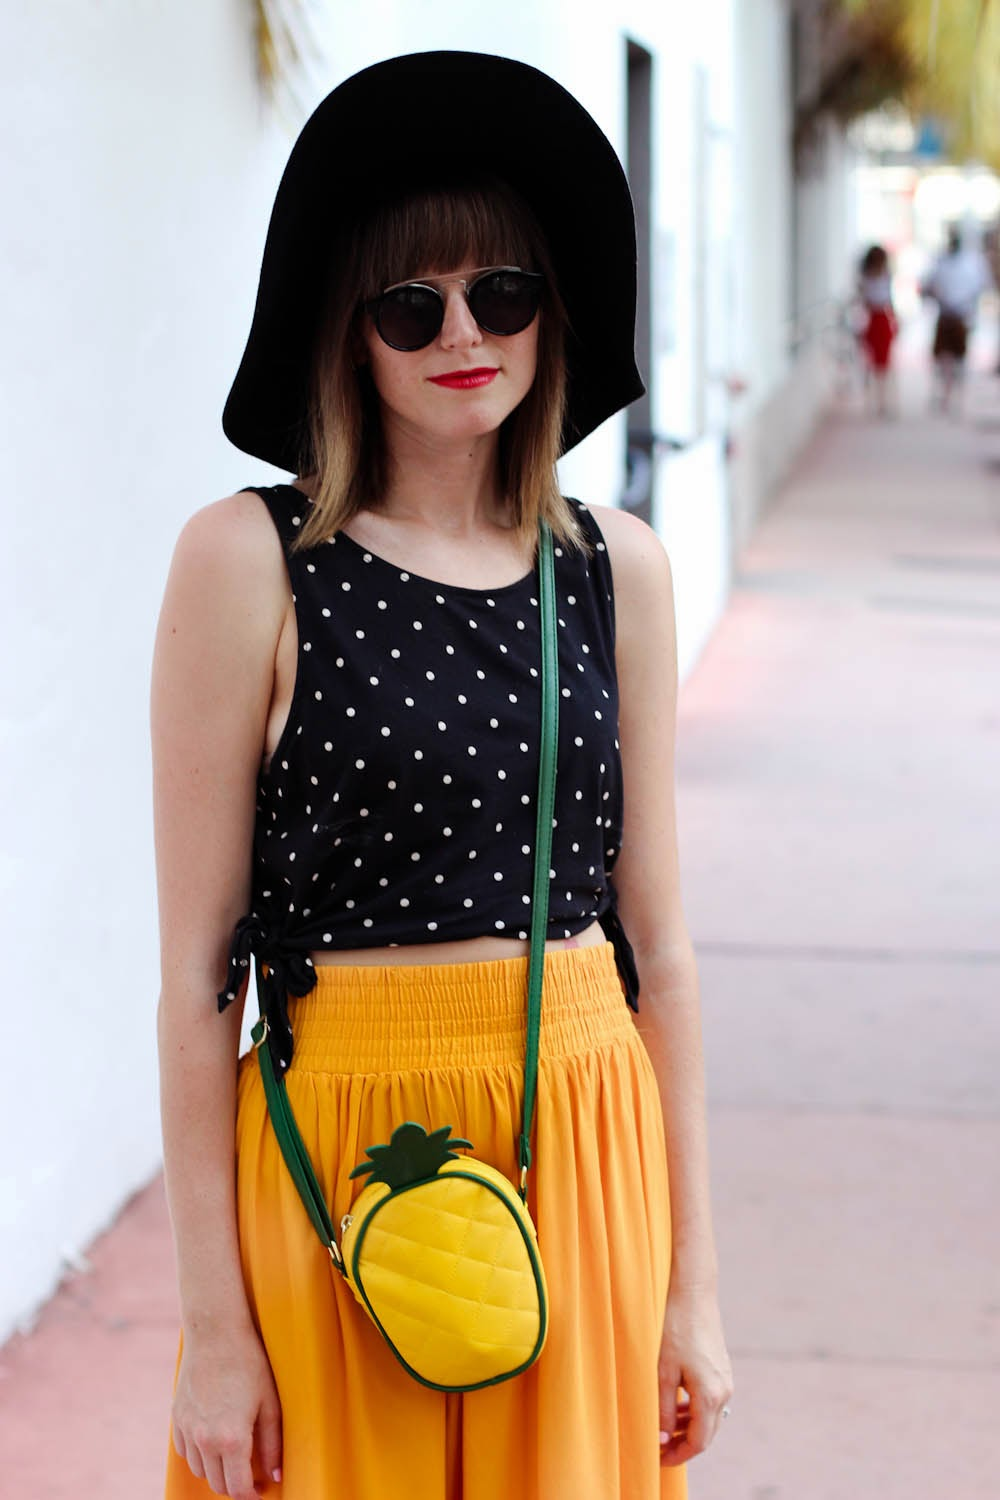 forever 21 polka dot blouse, pineapple bag, vintage yellow skirt, miami fashion blogger